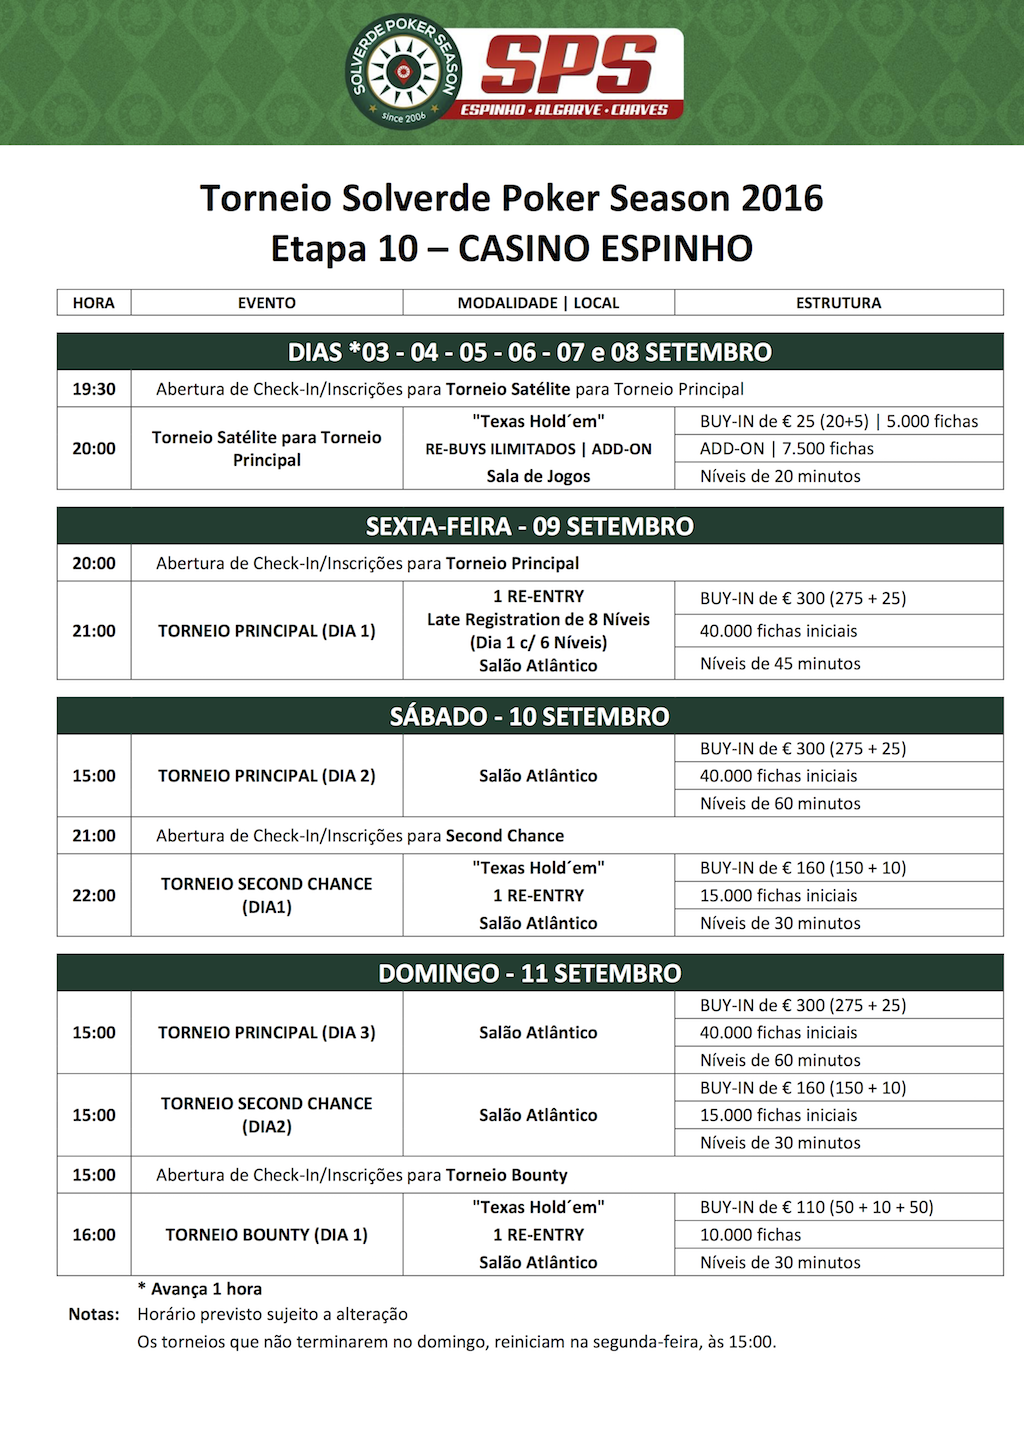 Etapa 10 Solverde Poker Season Arranca às 21:00 no Casino de Espinho (9 Set) 101